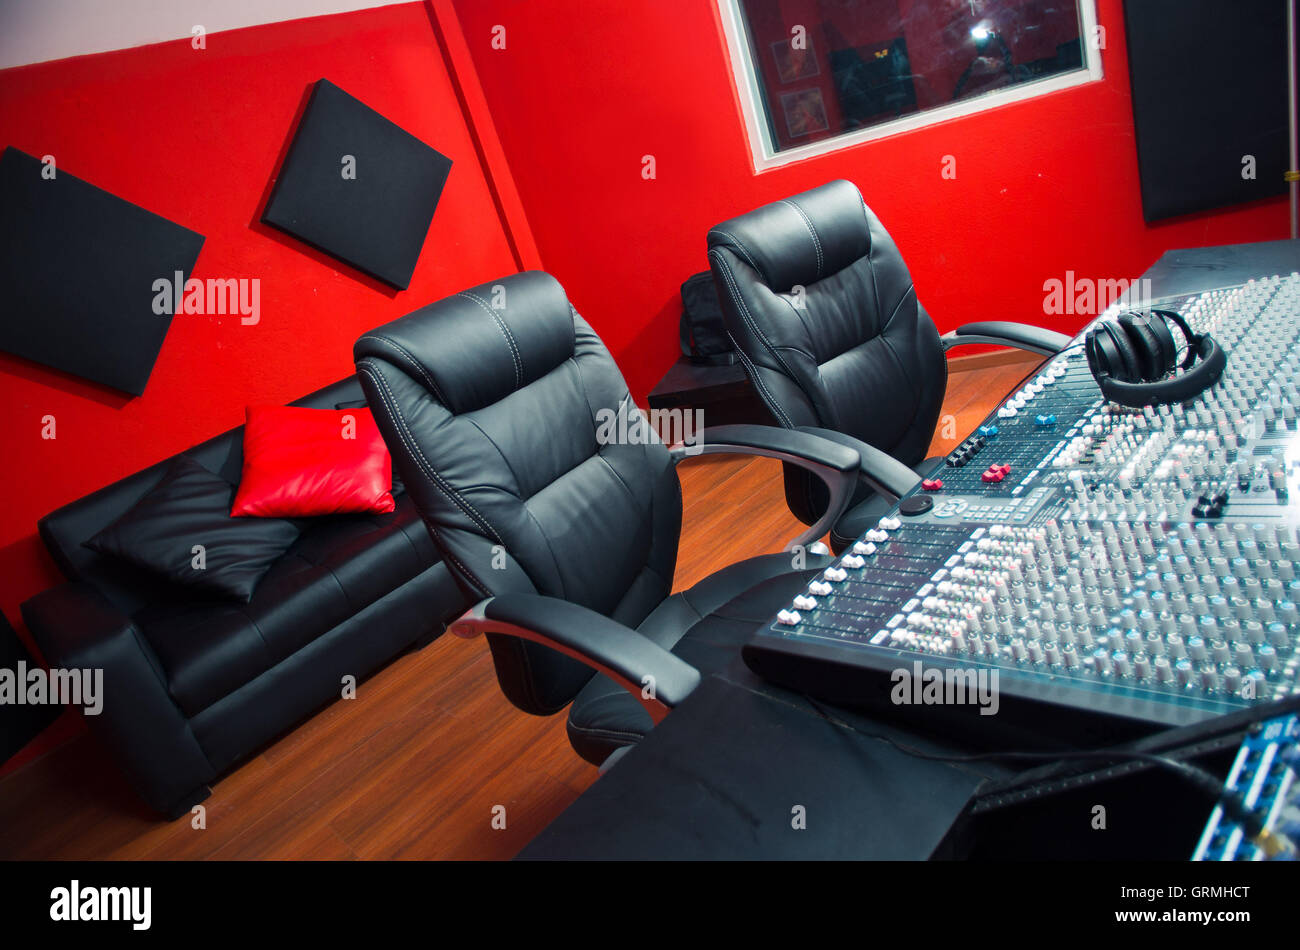 Recording studio chair -  Classy Professional Recording Studio Setup Large Desk With Mixing Console And Two Chairs Window